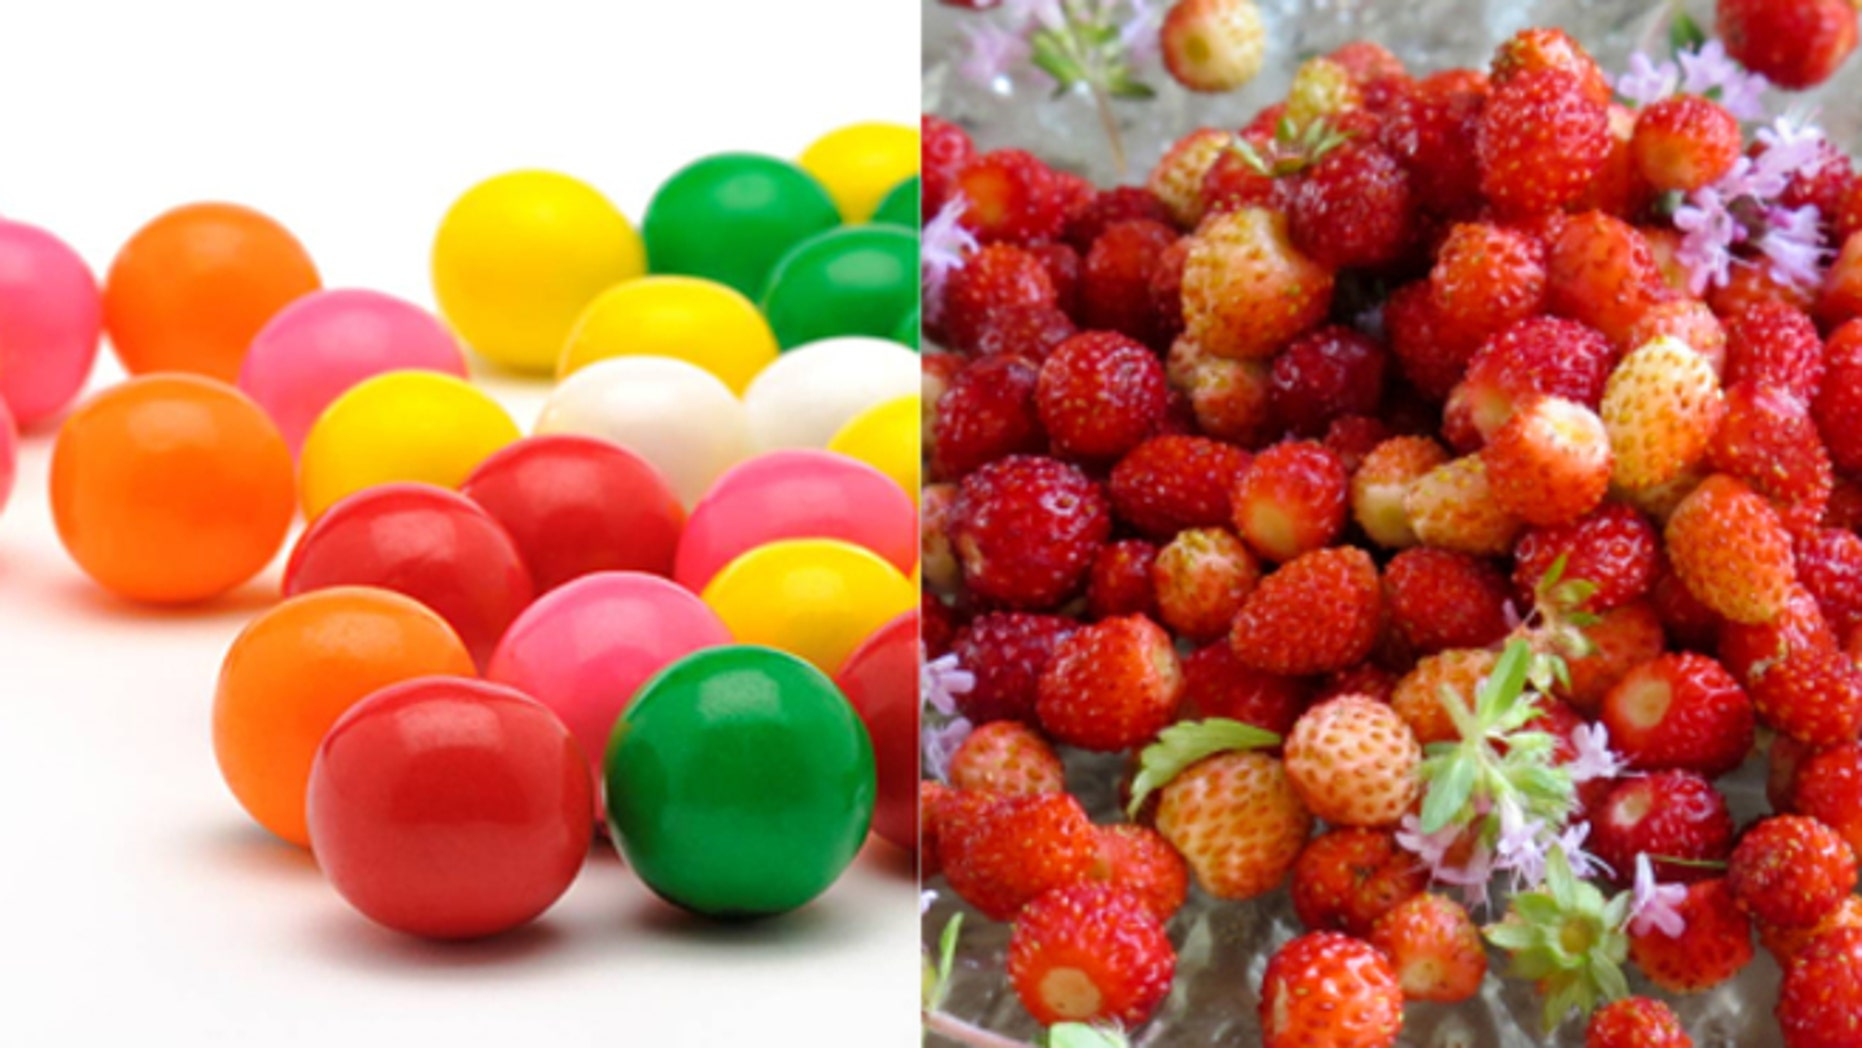 Bubblegum and berries together at last.